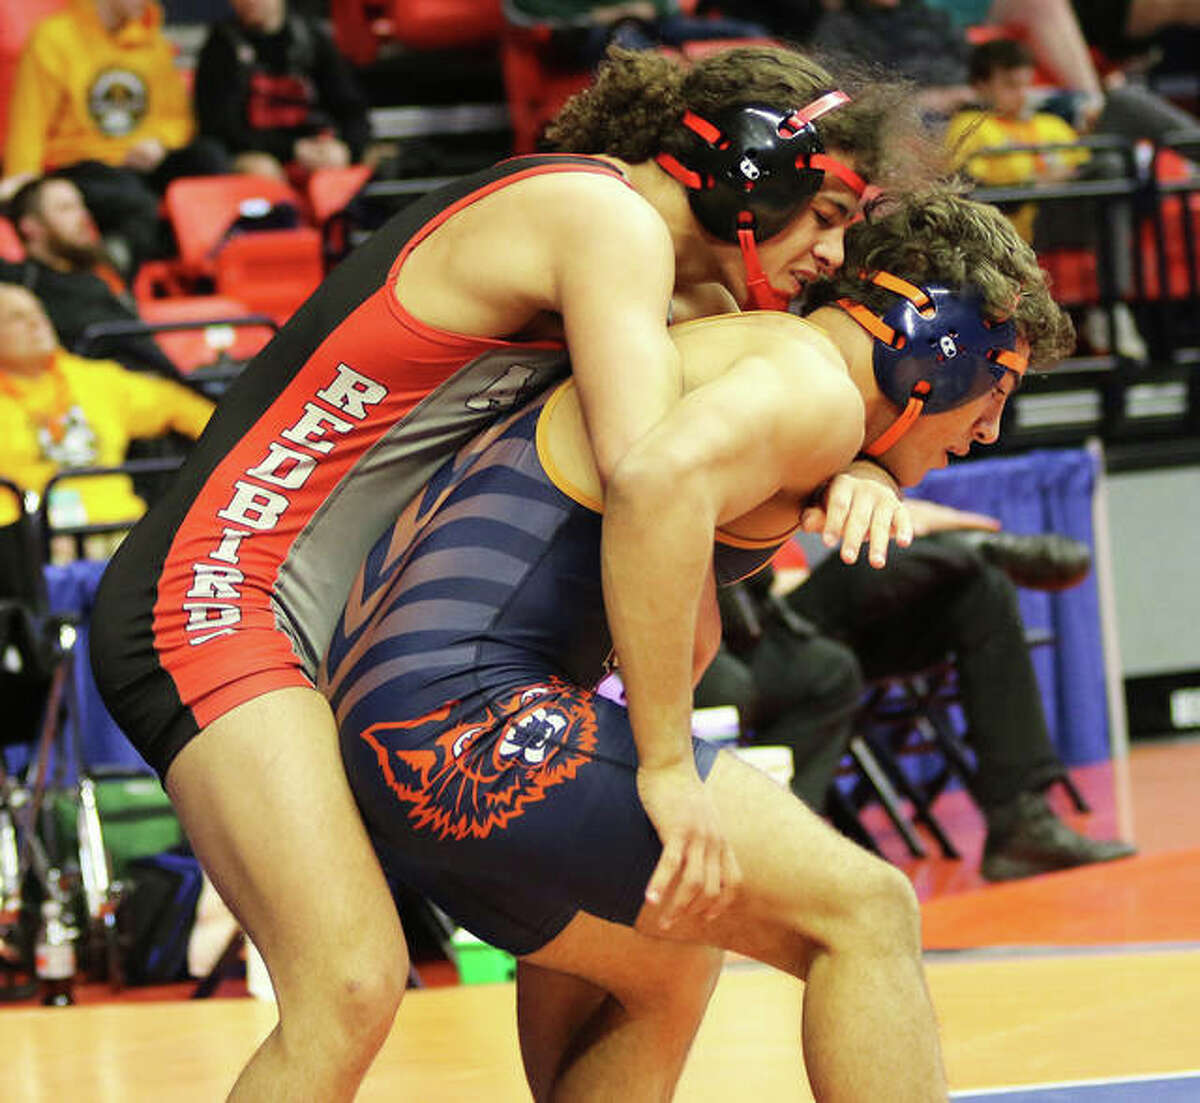 Alton's Damien Jones (left) is one of five returning seniors this season. Jones had a pair of wins at the 2020 IHSA Class 3A State Tournament. Above, he tries to keep Evanston's Ricardo Salinas from escaping during a 170-pound wrestleback at the state tournament at State Farm Center in Champaign.